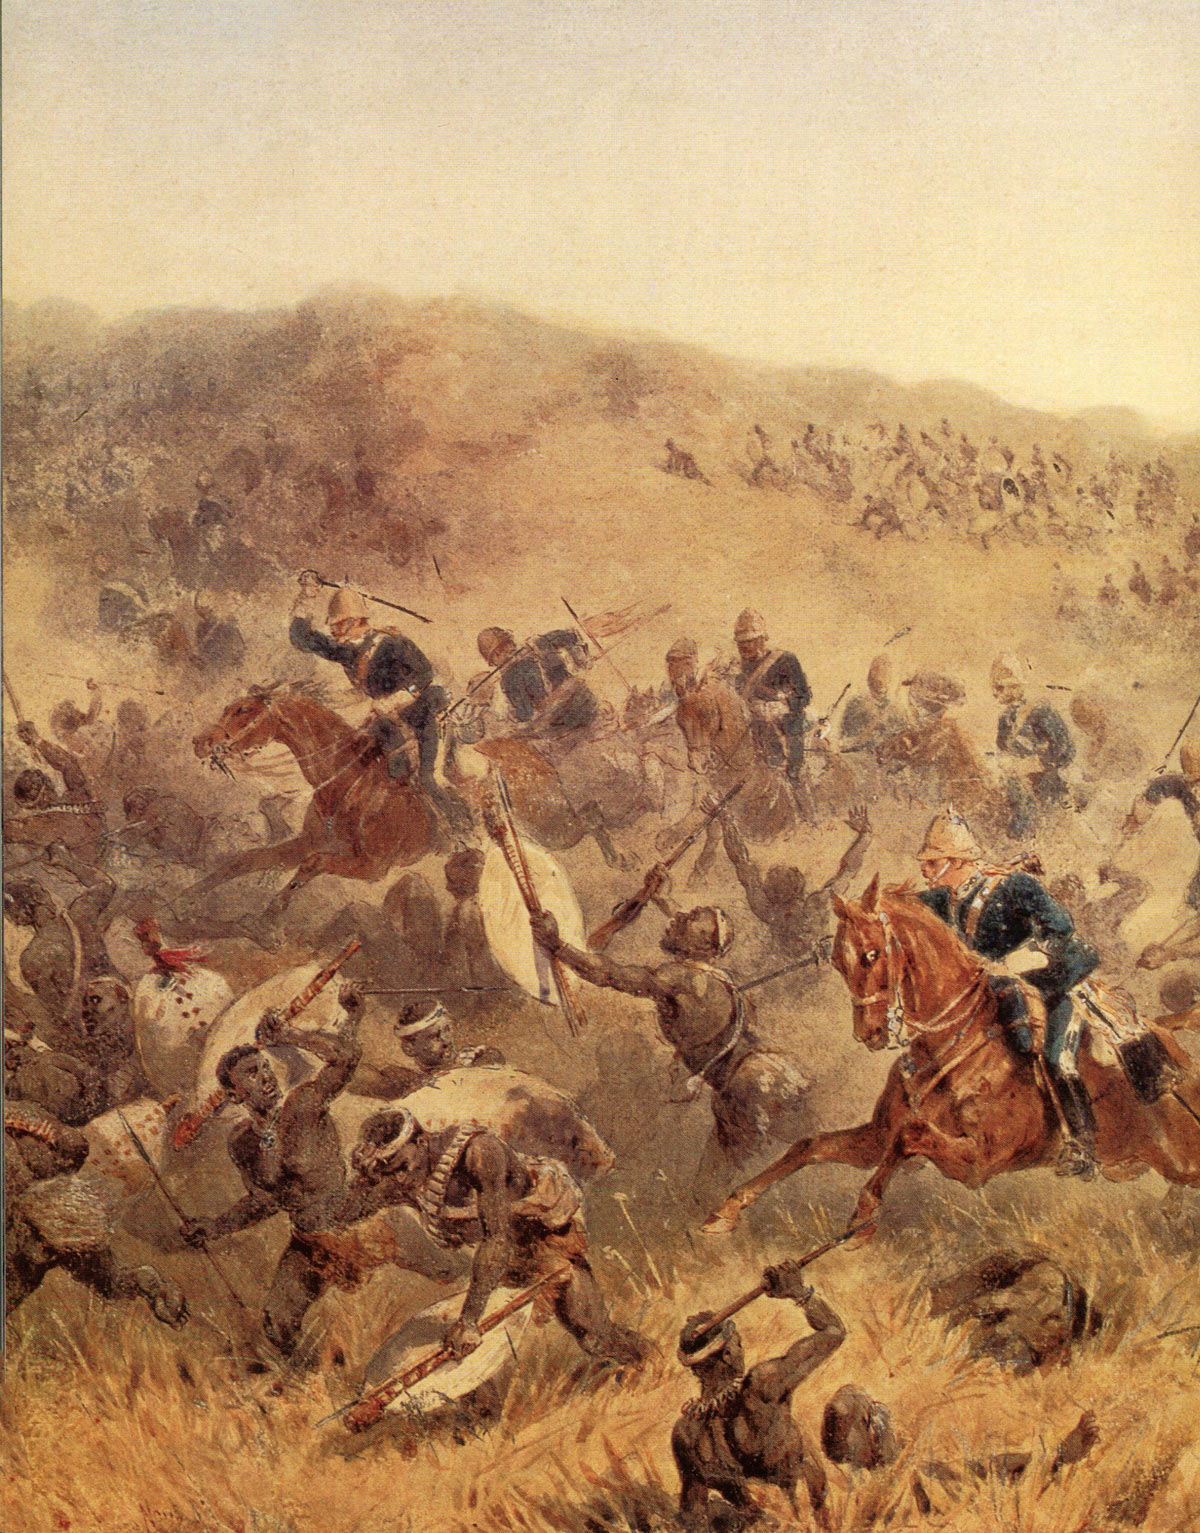 Charge of the 17th Lancers at the Battle of Ulundi on 4th July 1879 in the Zulu War: picture by Orlando Norie